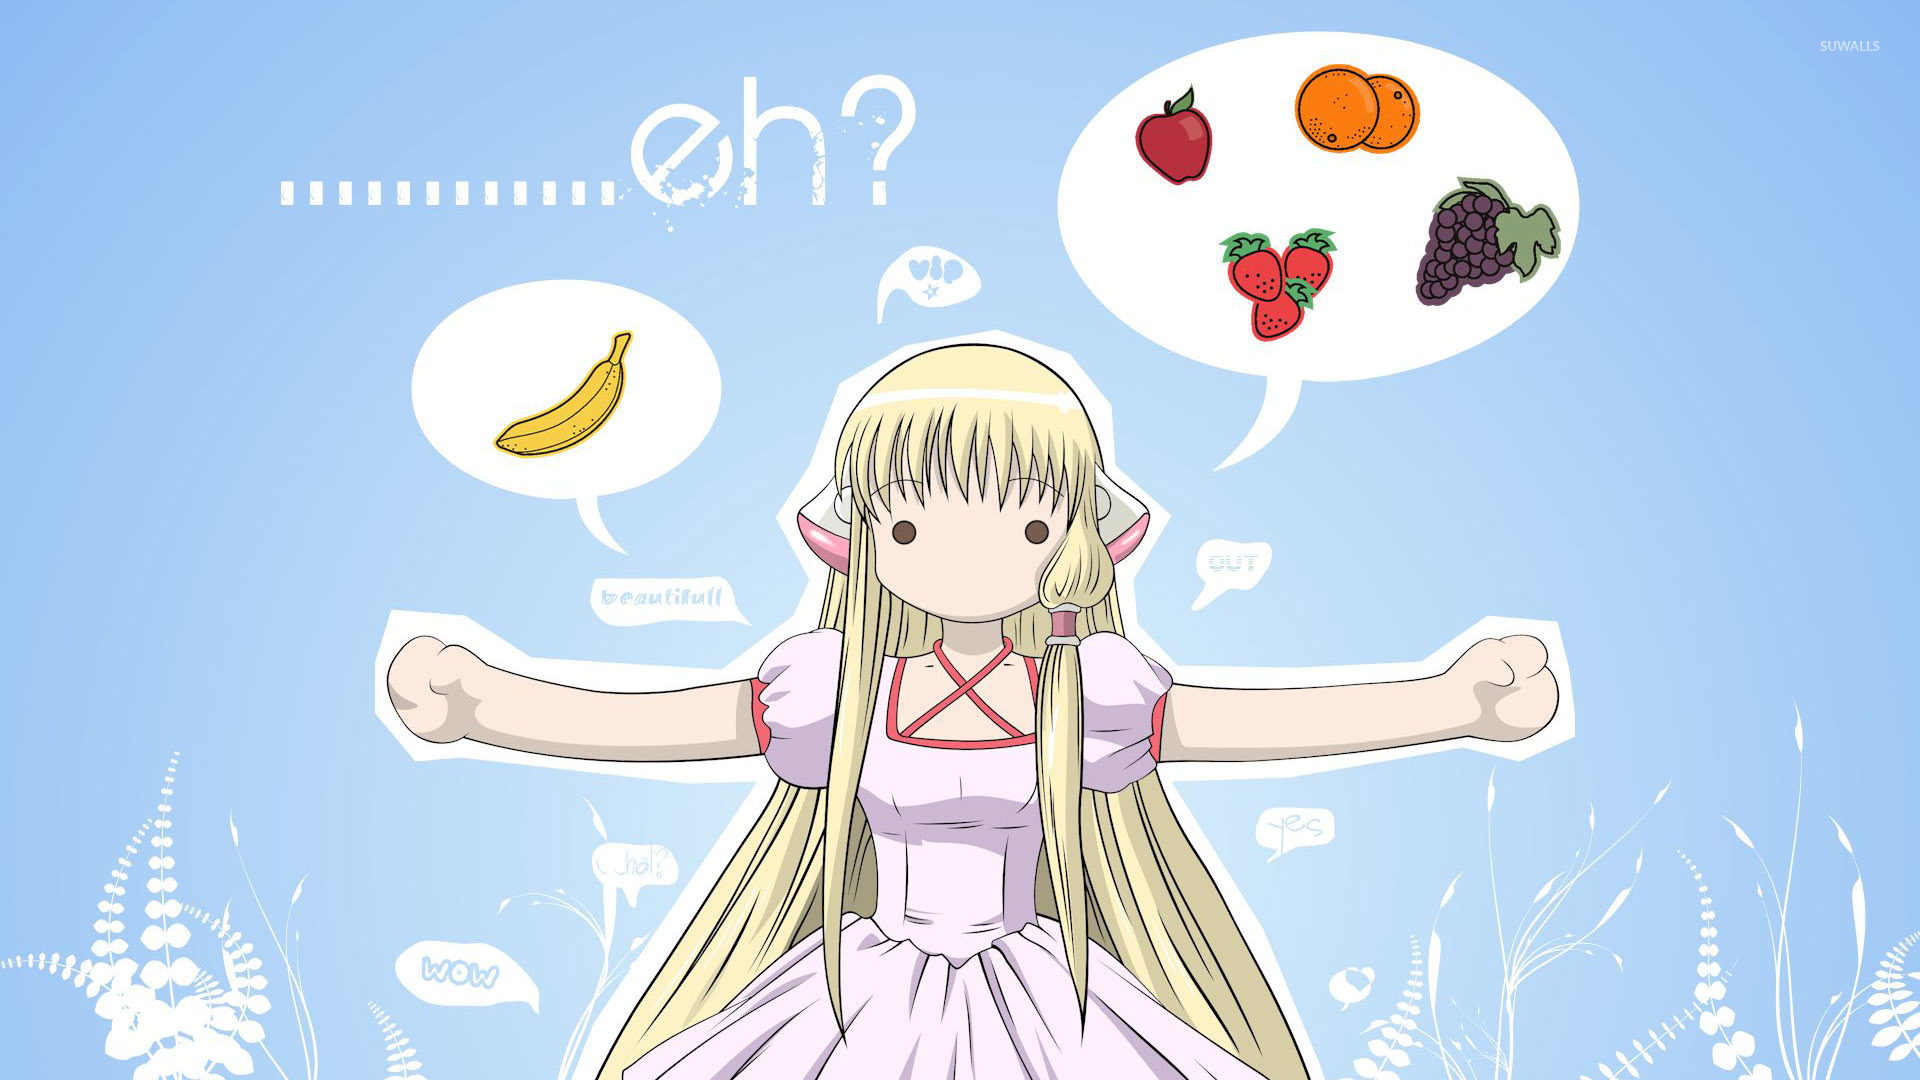 Chii From Chobits Wallpaper Anime Wallpapers 54125